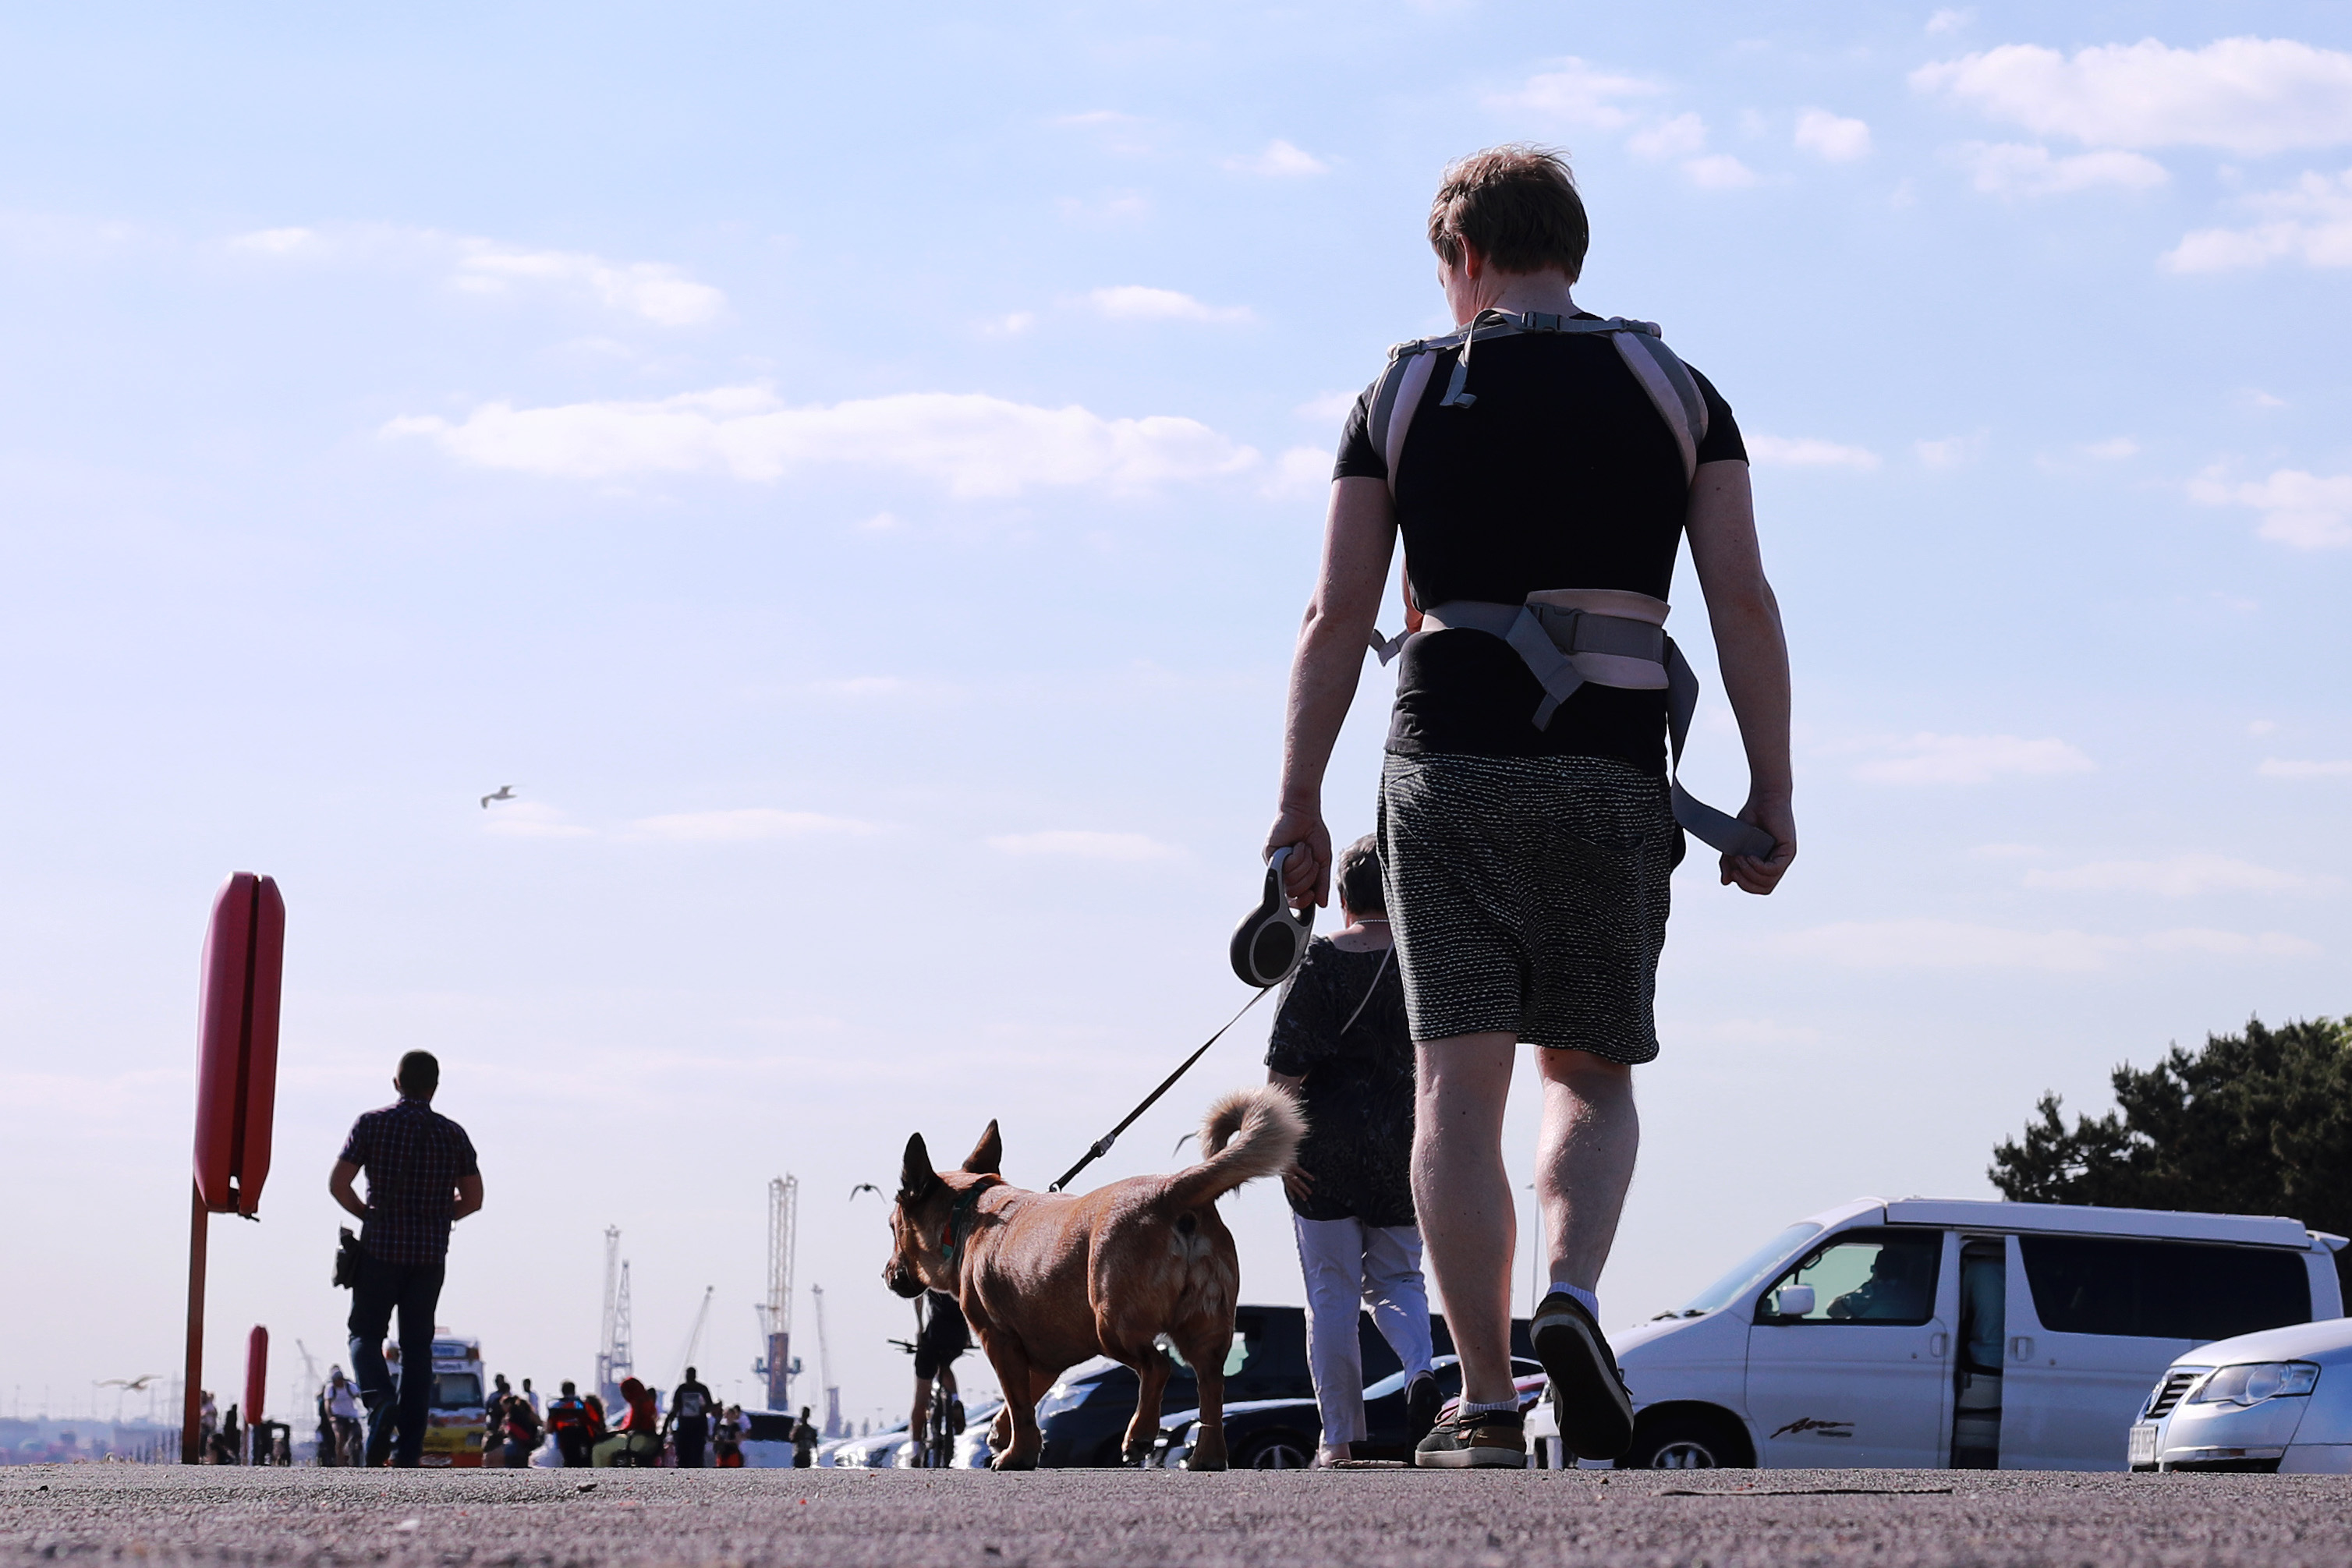 A member of the public takes a socially distanced walk with a dog in Southampton as lockdown restrictions are reduced in England during the ongoing coronavirus pandemic